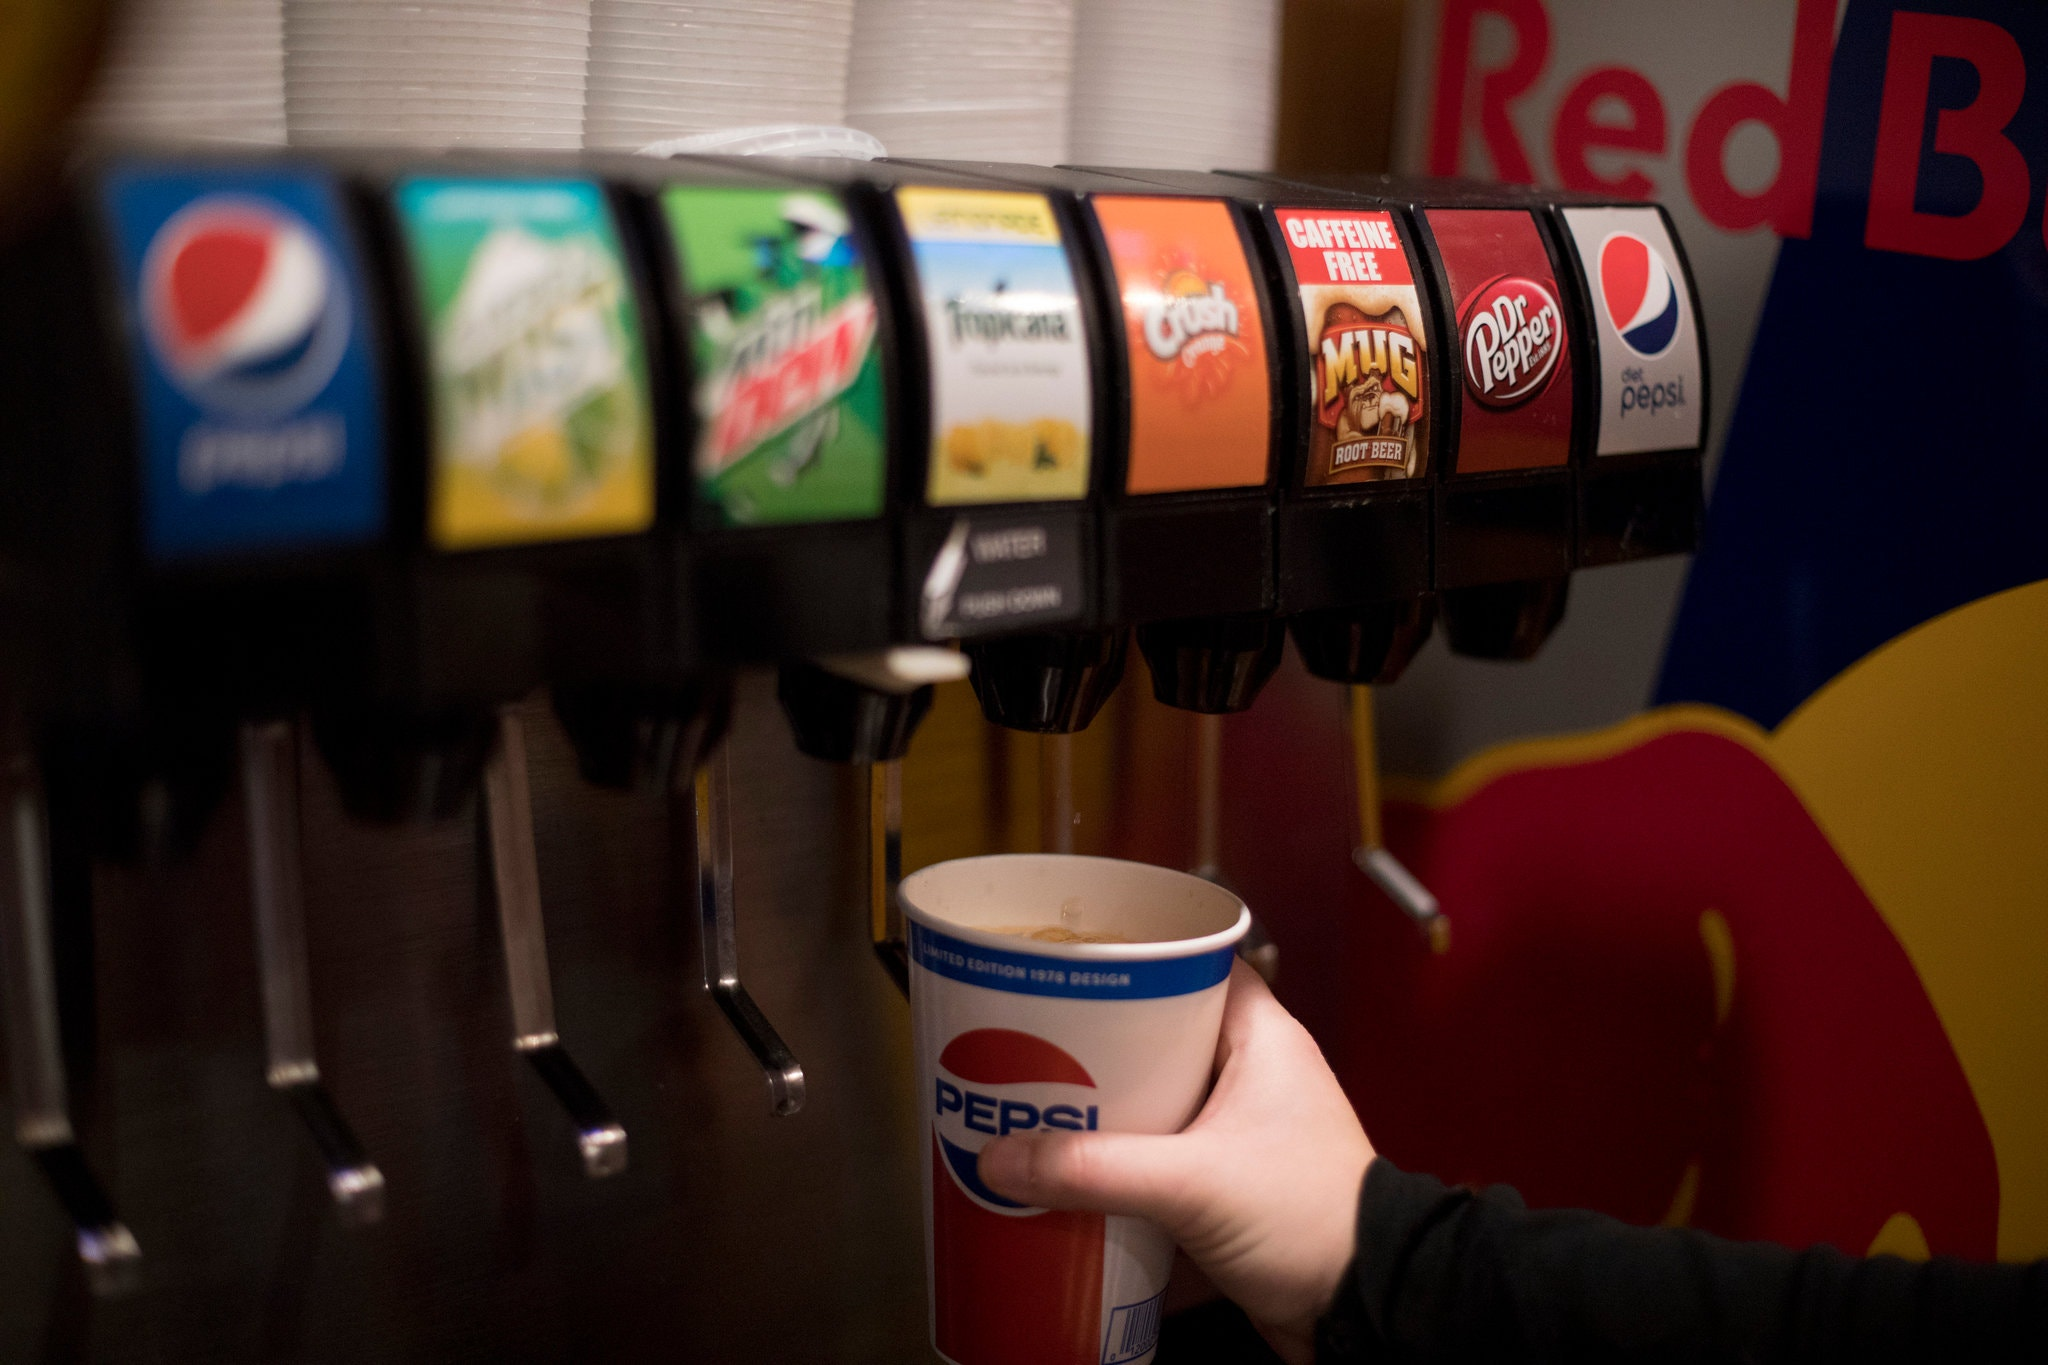 Taxes on sugary beverages and junk food would help lower health care costs. Credit: Jenny Kane/Associated Press